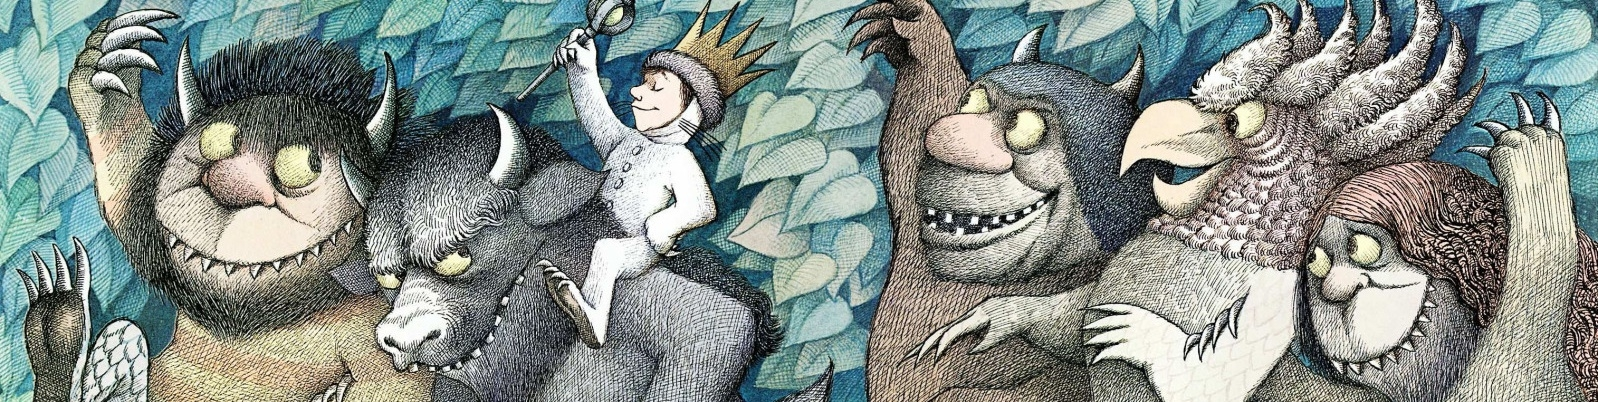 Banner Where the Wild Things Are